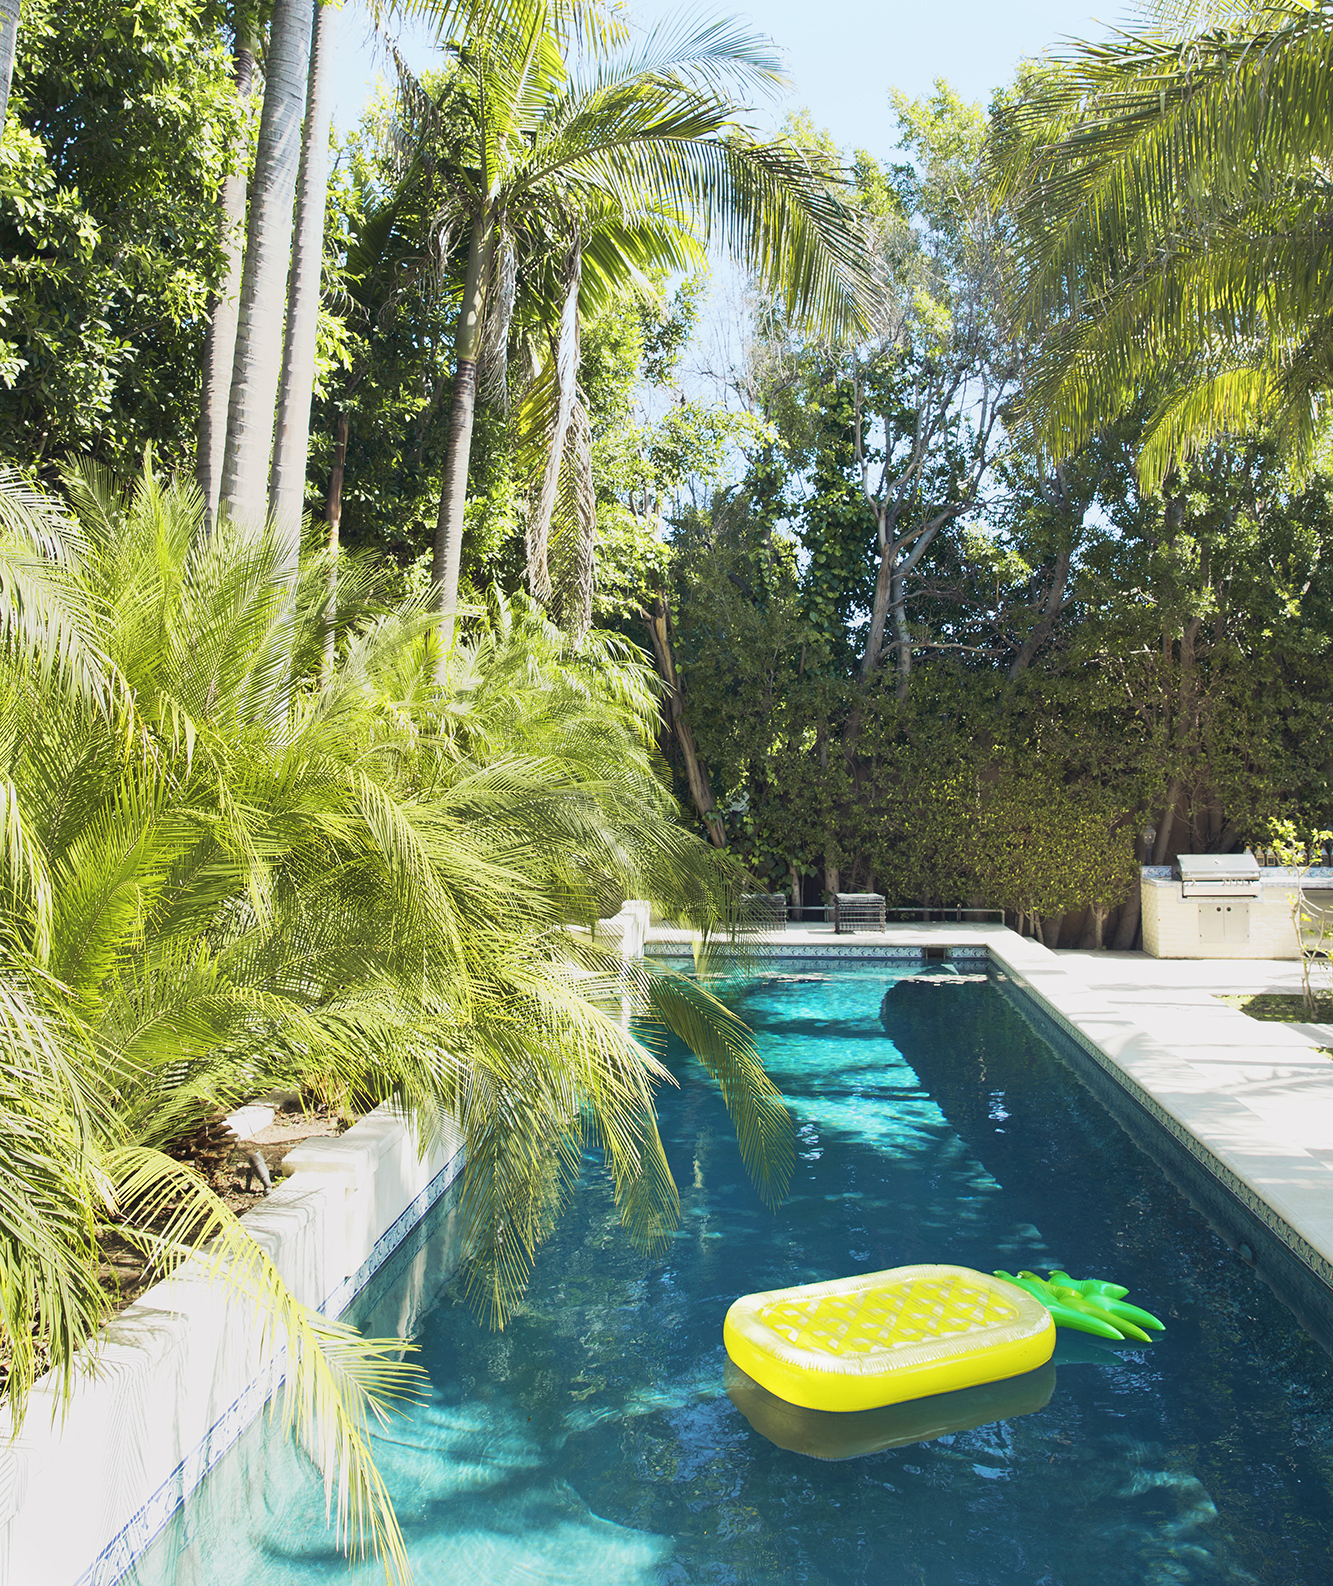 Pool surrounded by palms